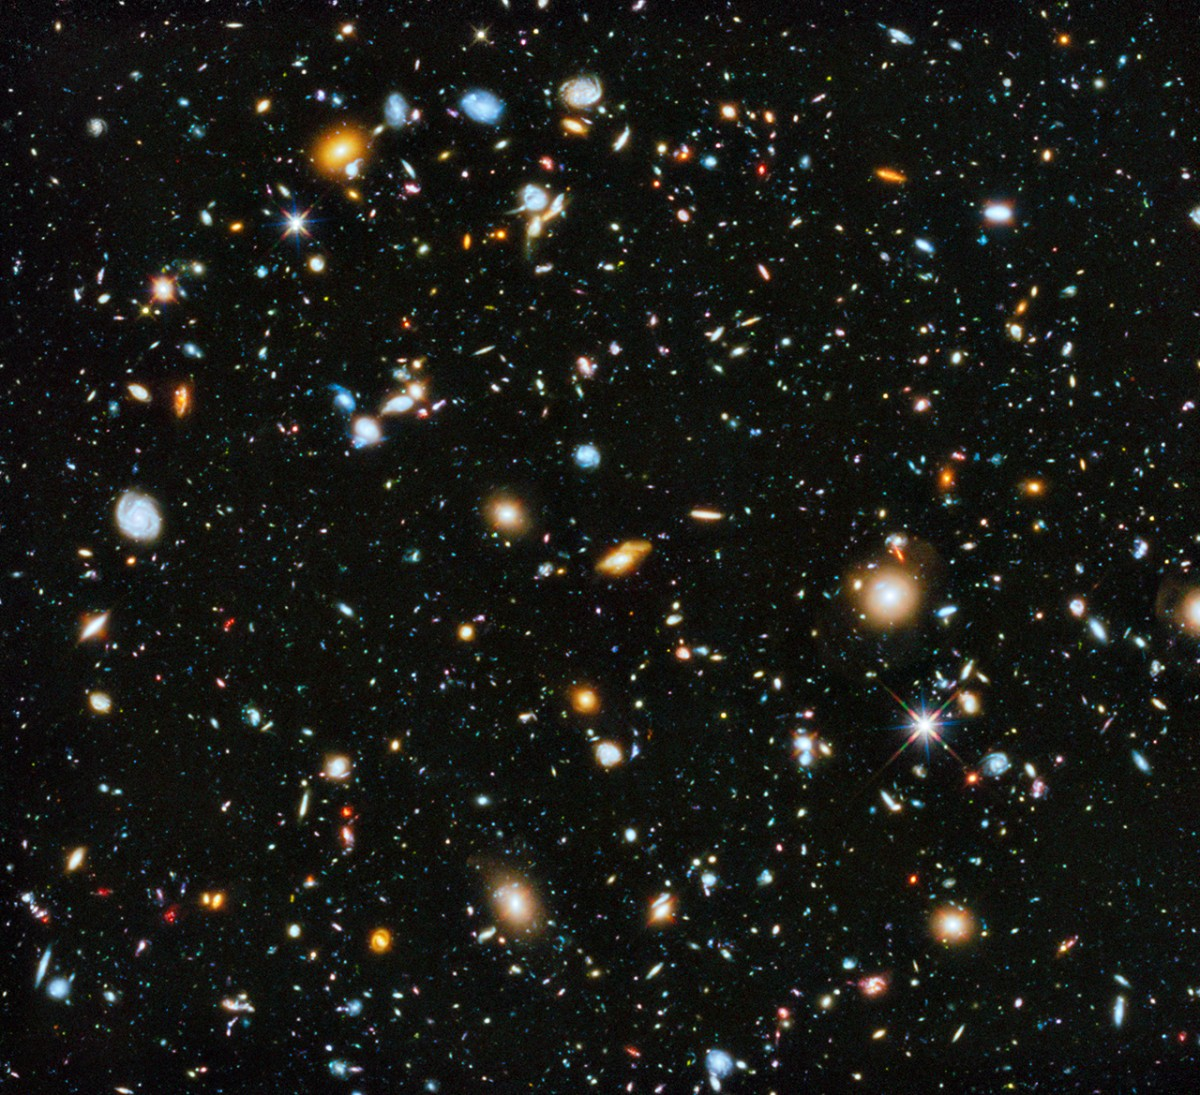 Hubble ultra deep field 2014 version : un joli morceau d'univers